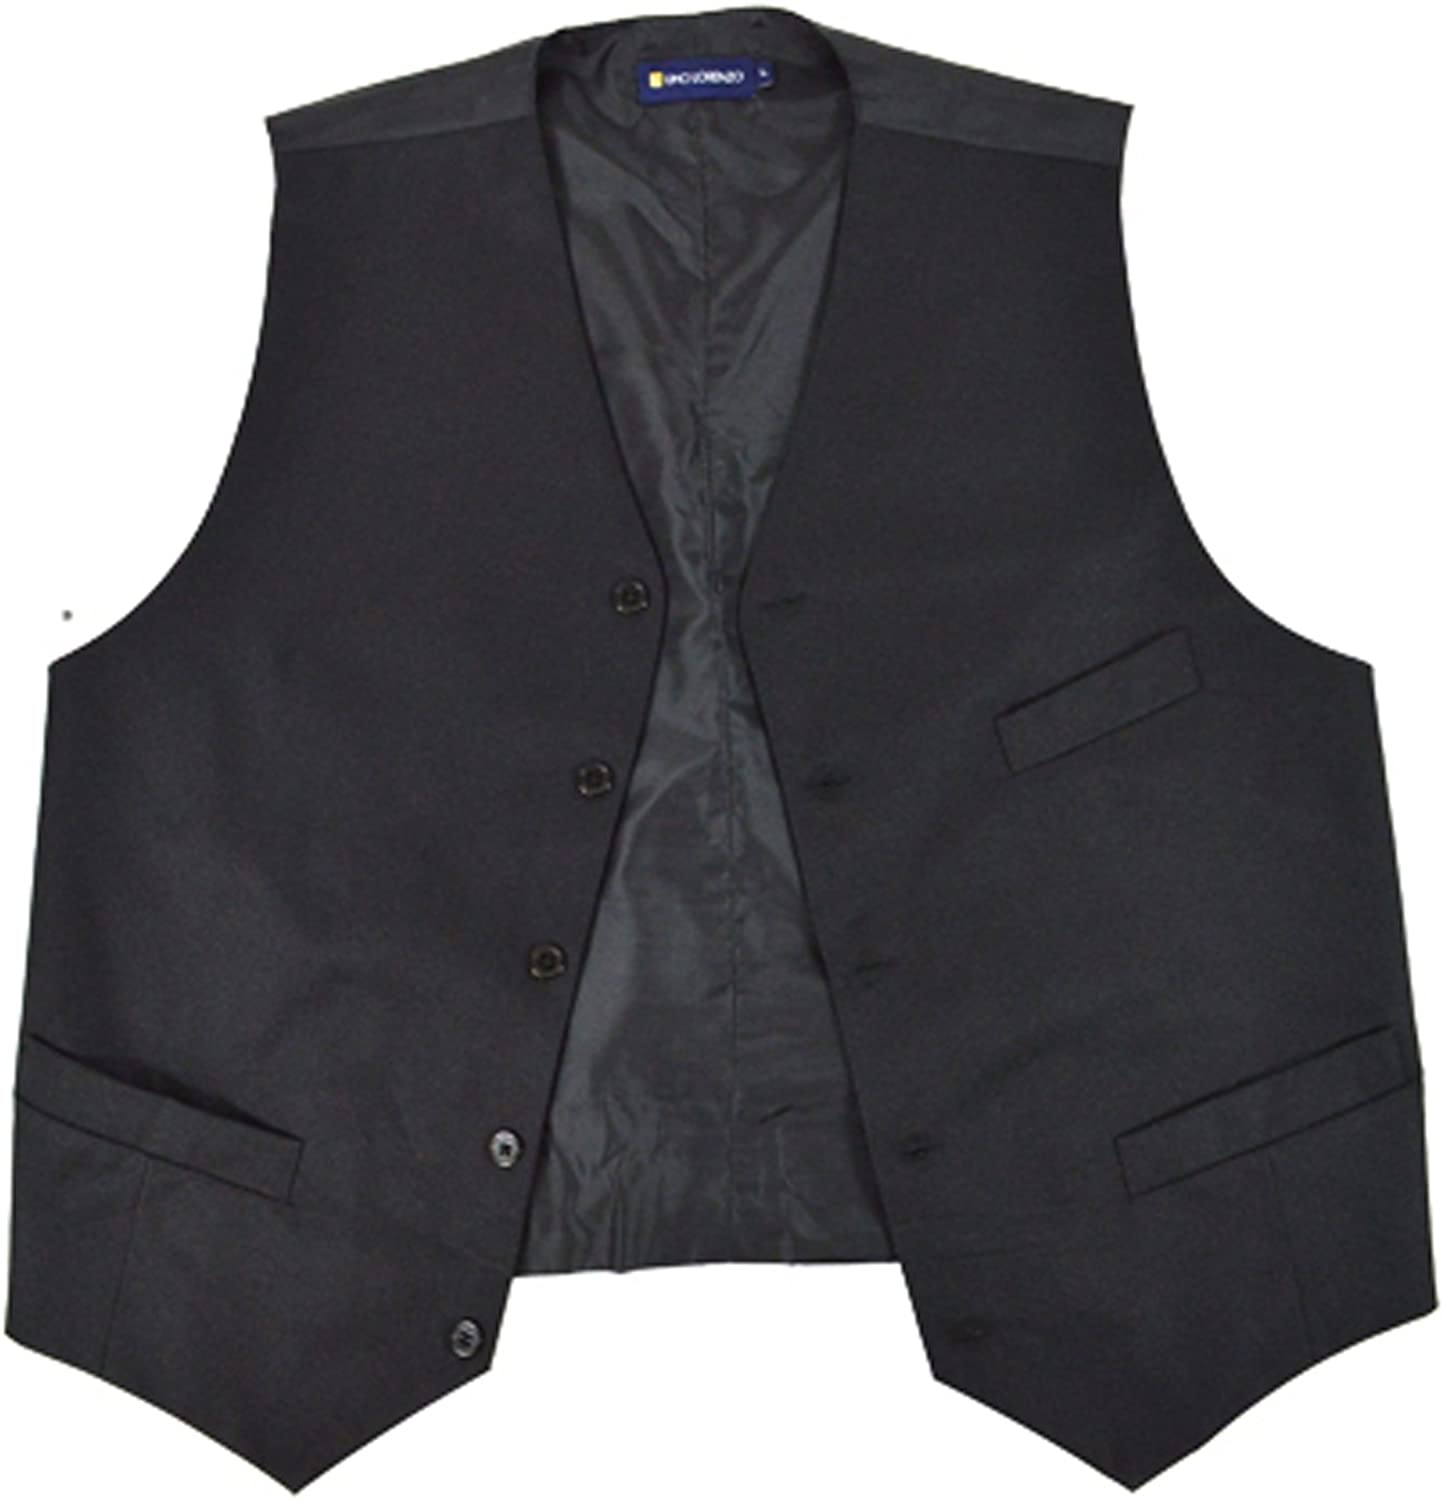 Poly Twill Vest with Chest Pocket